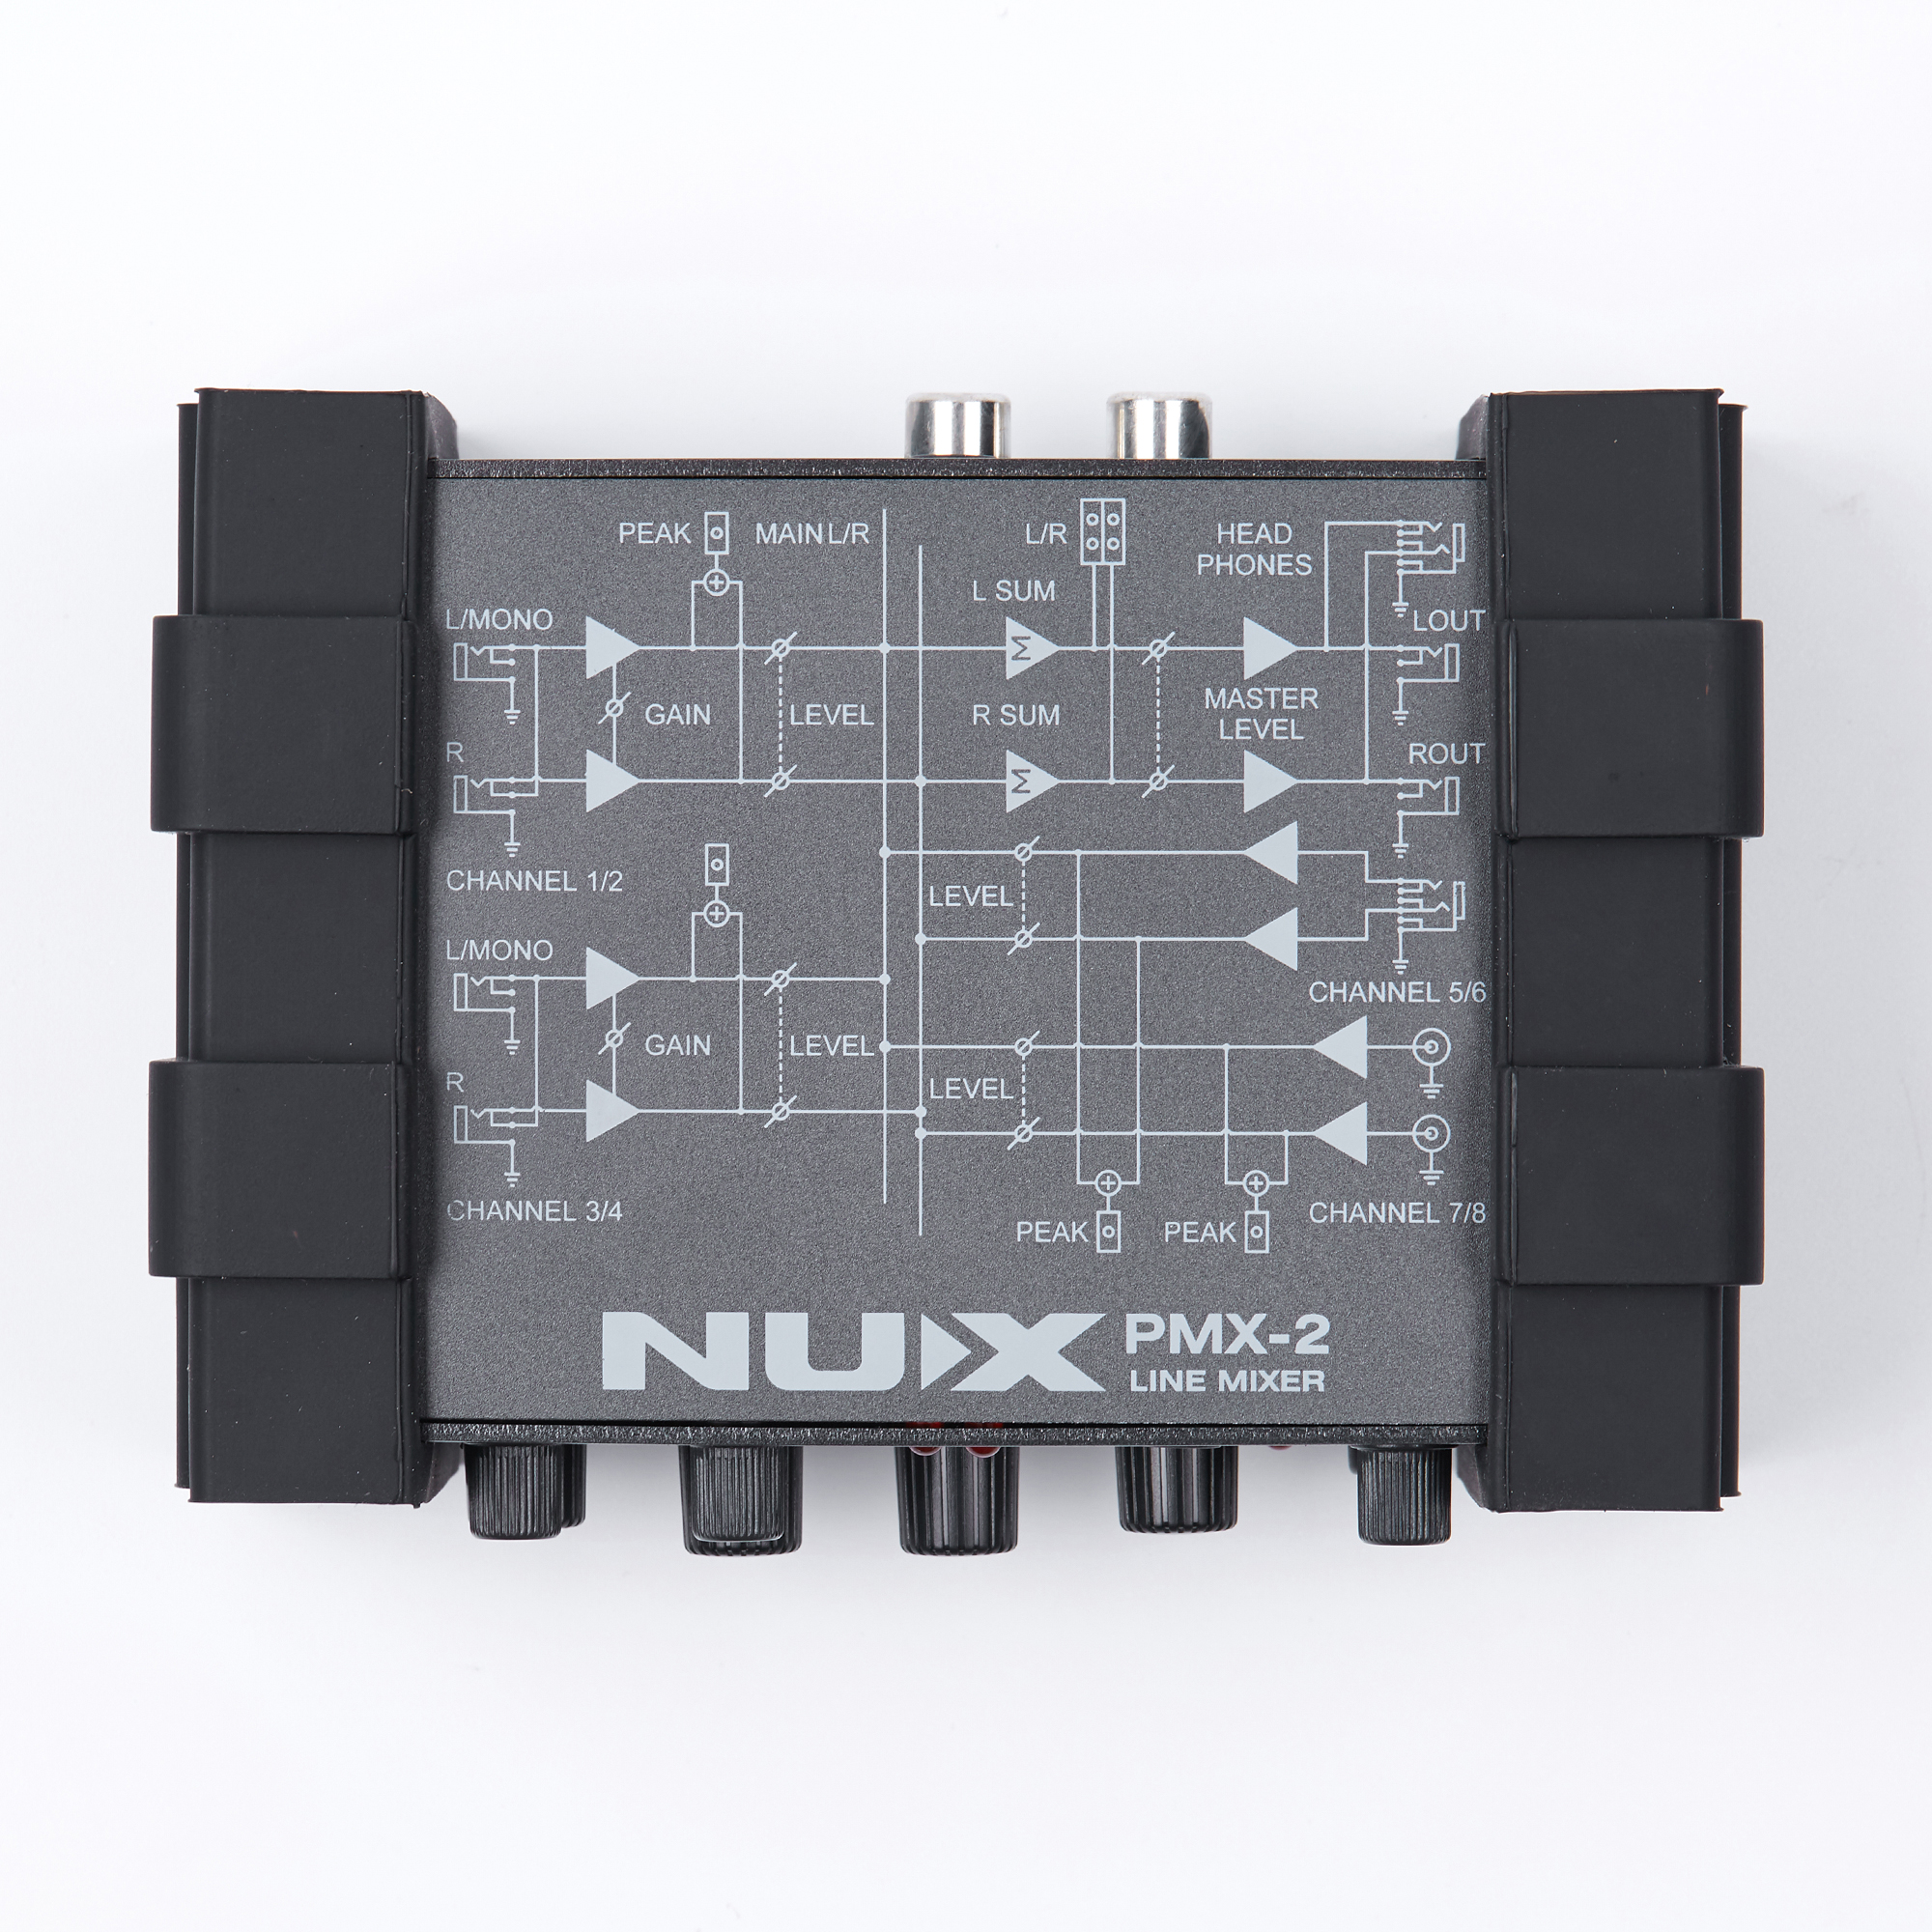 Gain Control 8 Inputs and 2 Outputs NUX PMX-2 Multi-Channel Mini Mixer 30 Musical Instruments Accessories for Guitar Bass Player декоративные обои брянские обои лия 31 с6гр гп 1 рулон